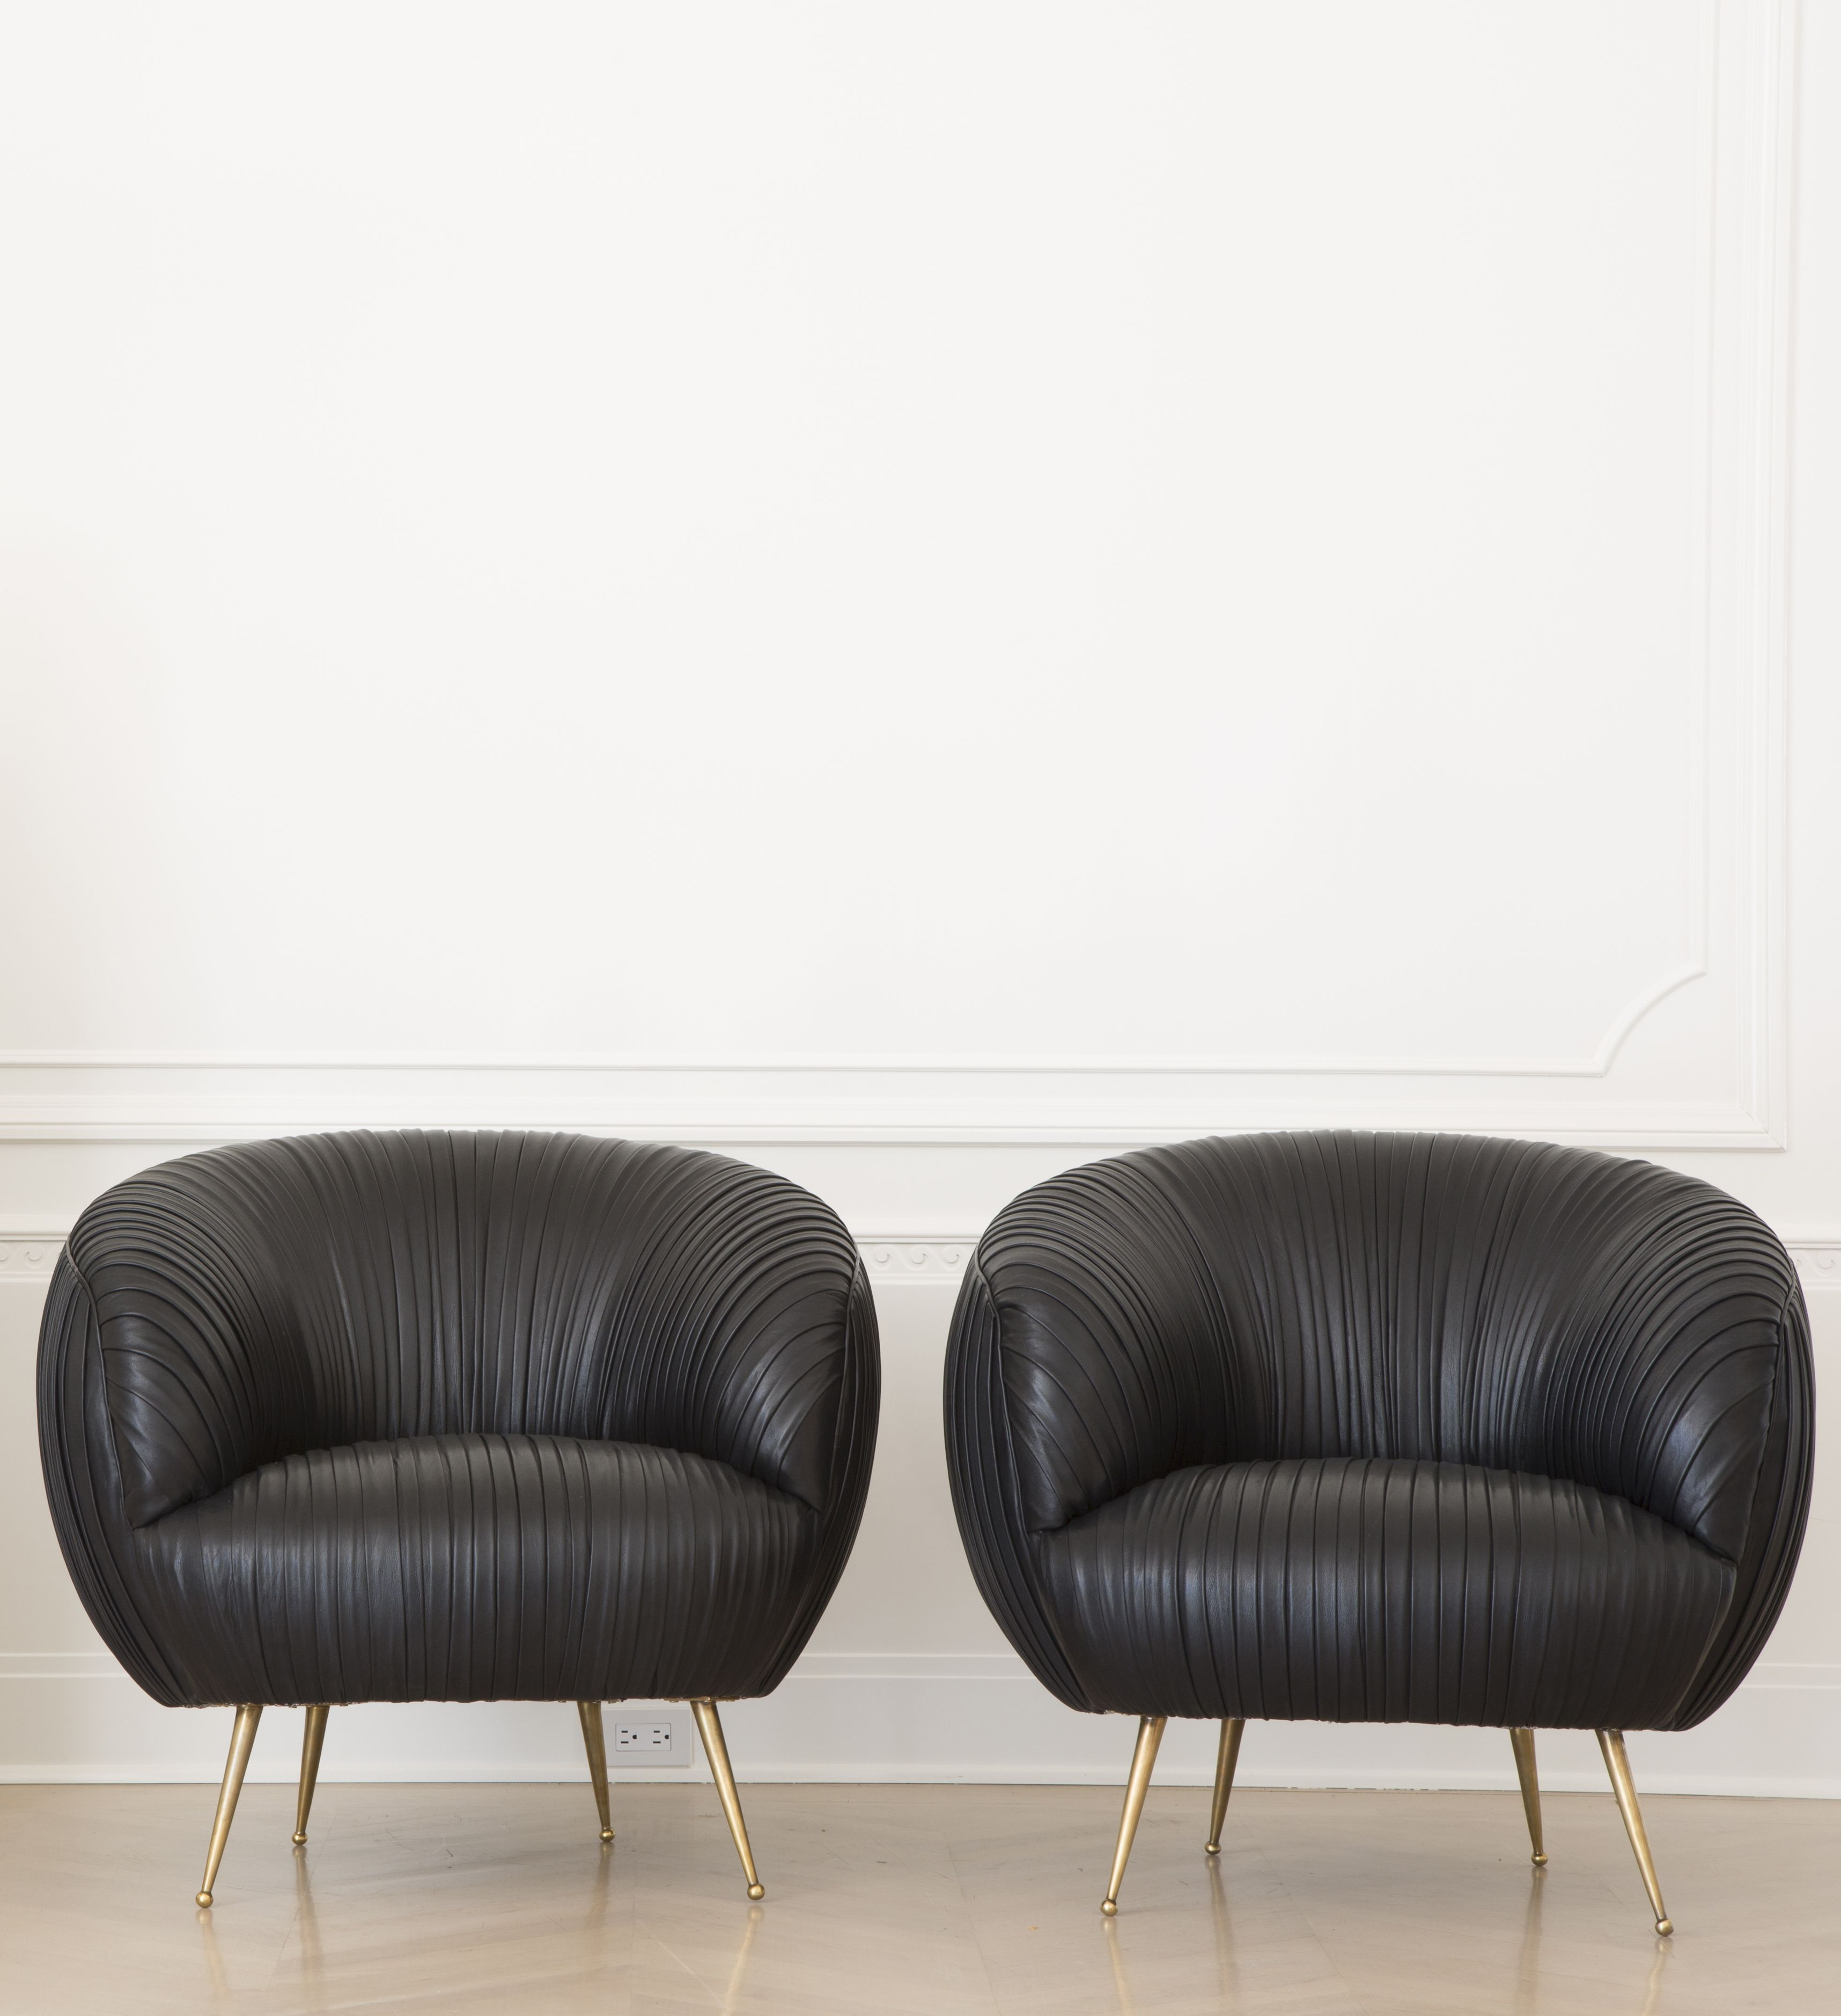 Pin 9: I think these leather chairs are stunning. The shape and the ...